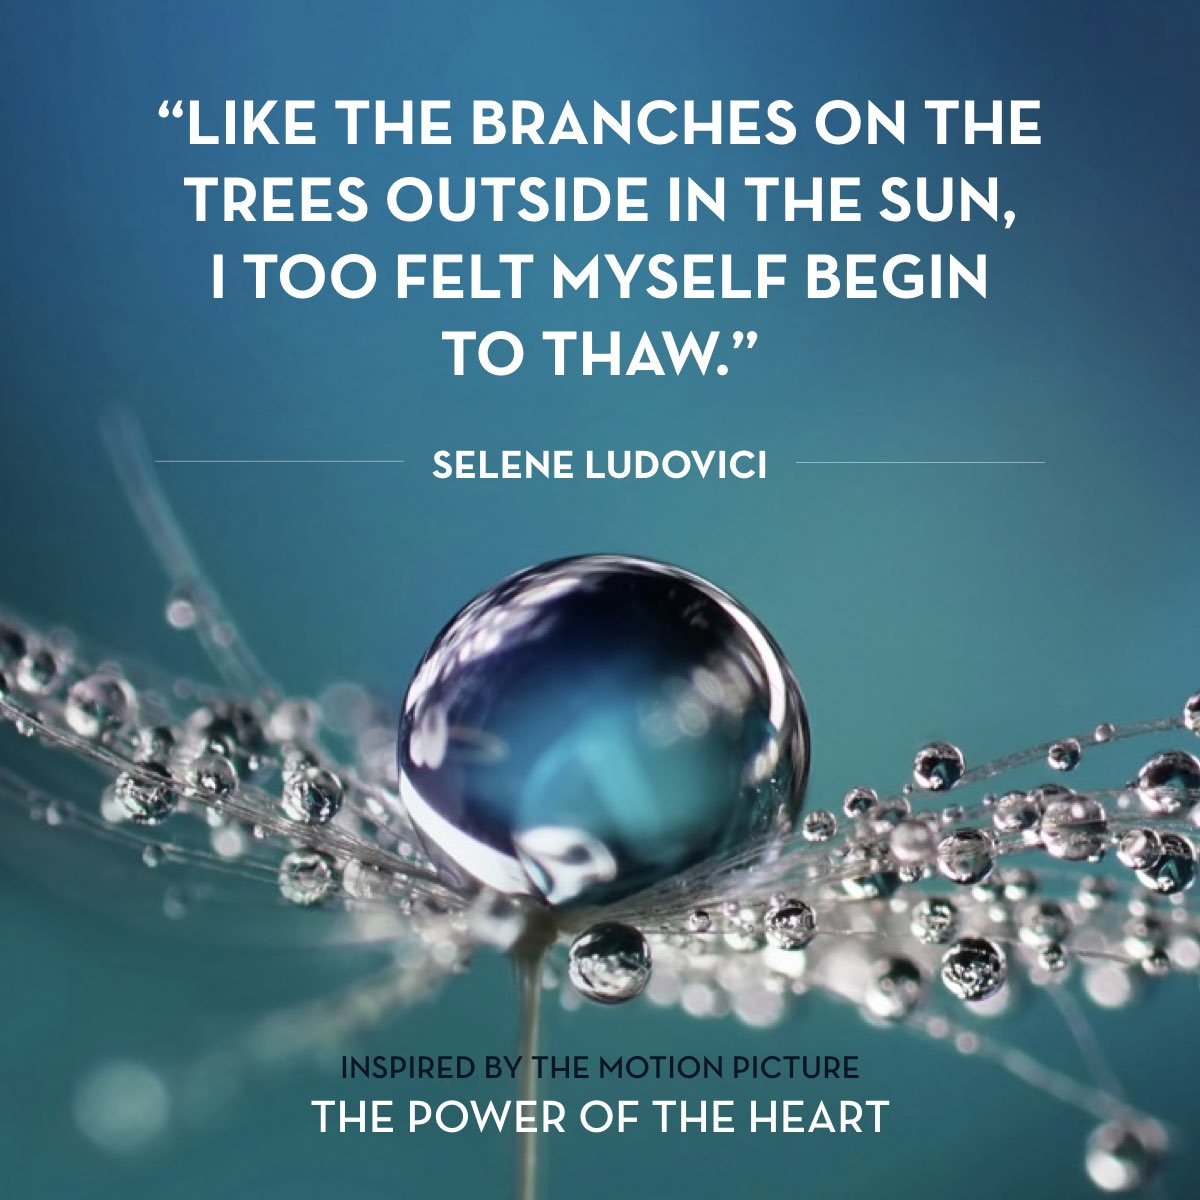 From 'Unfreezing The Heart' by Selene  Ludovici. Read the full story at thepoweroftheheart.com